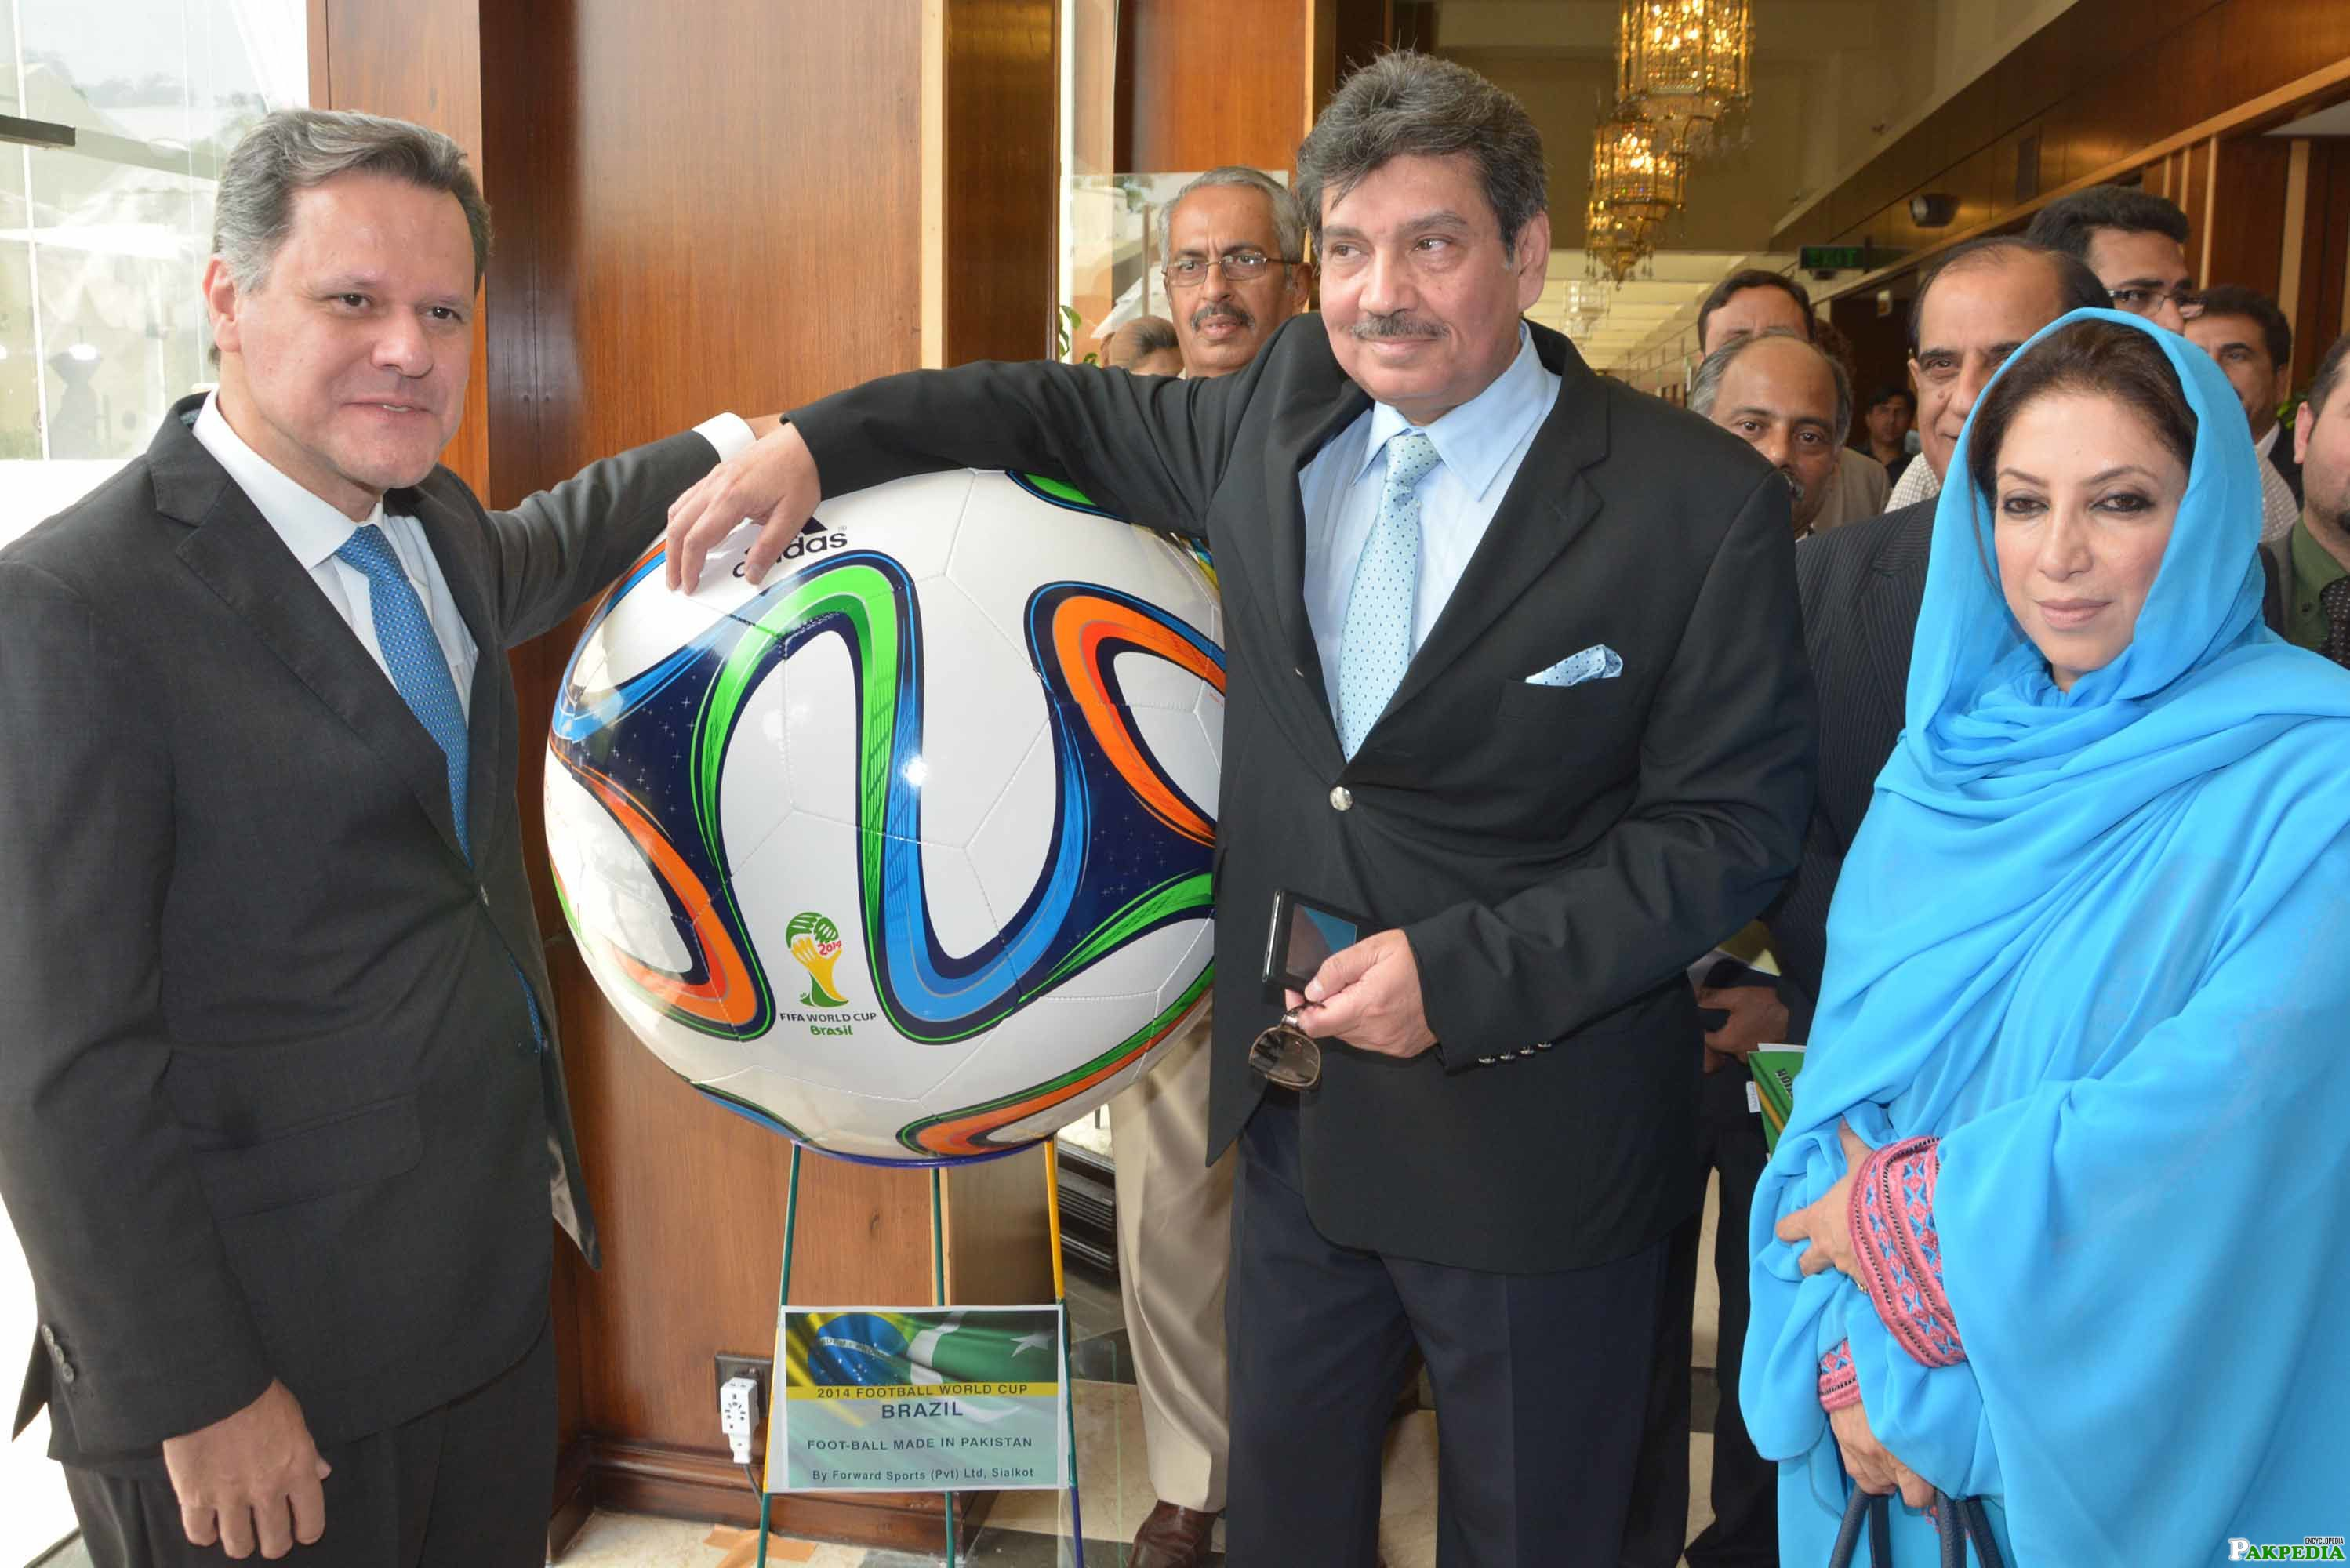 Embassy of Brazil at Football World cup Ceremony